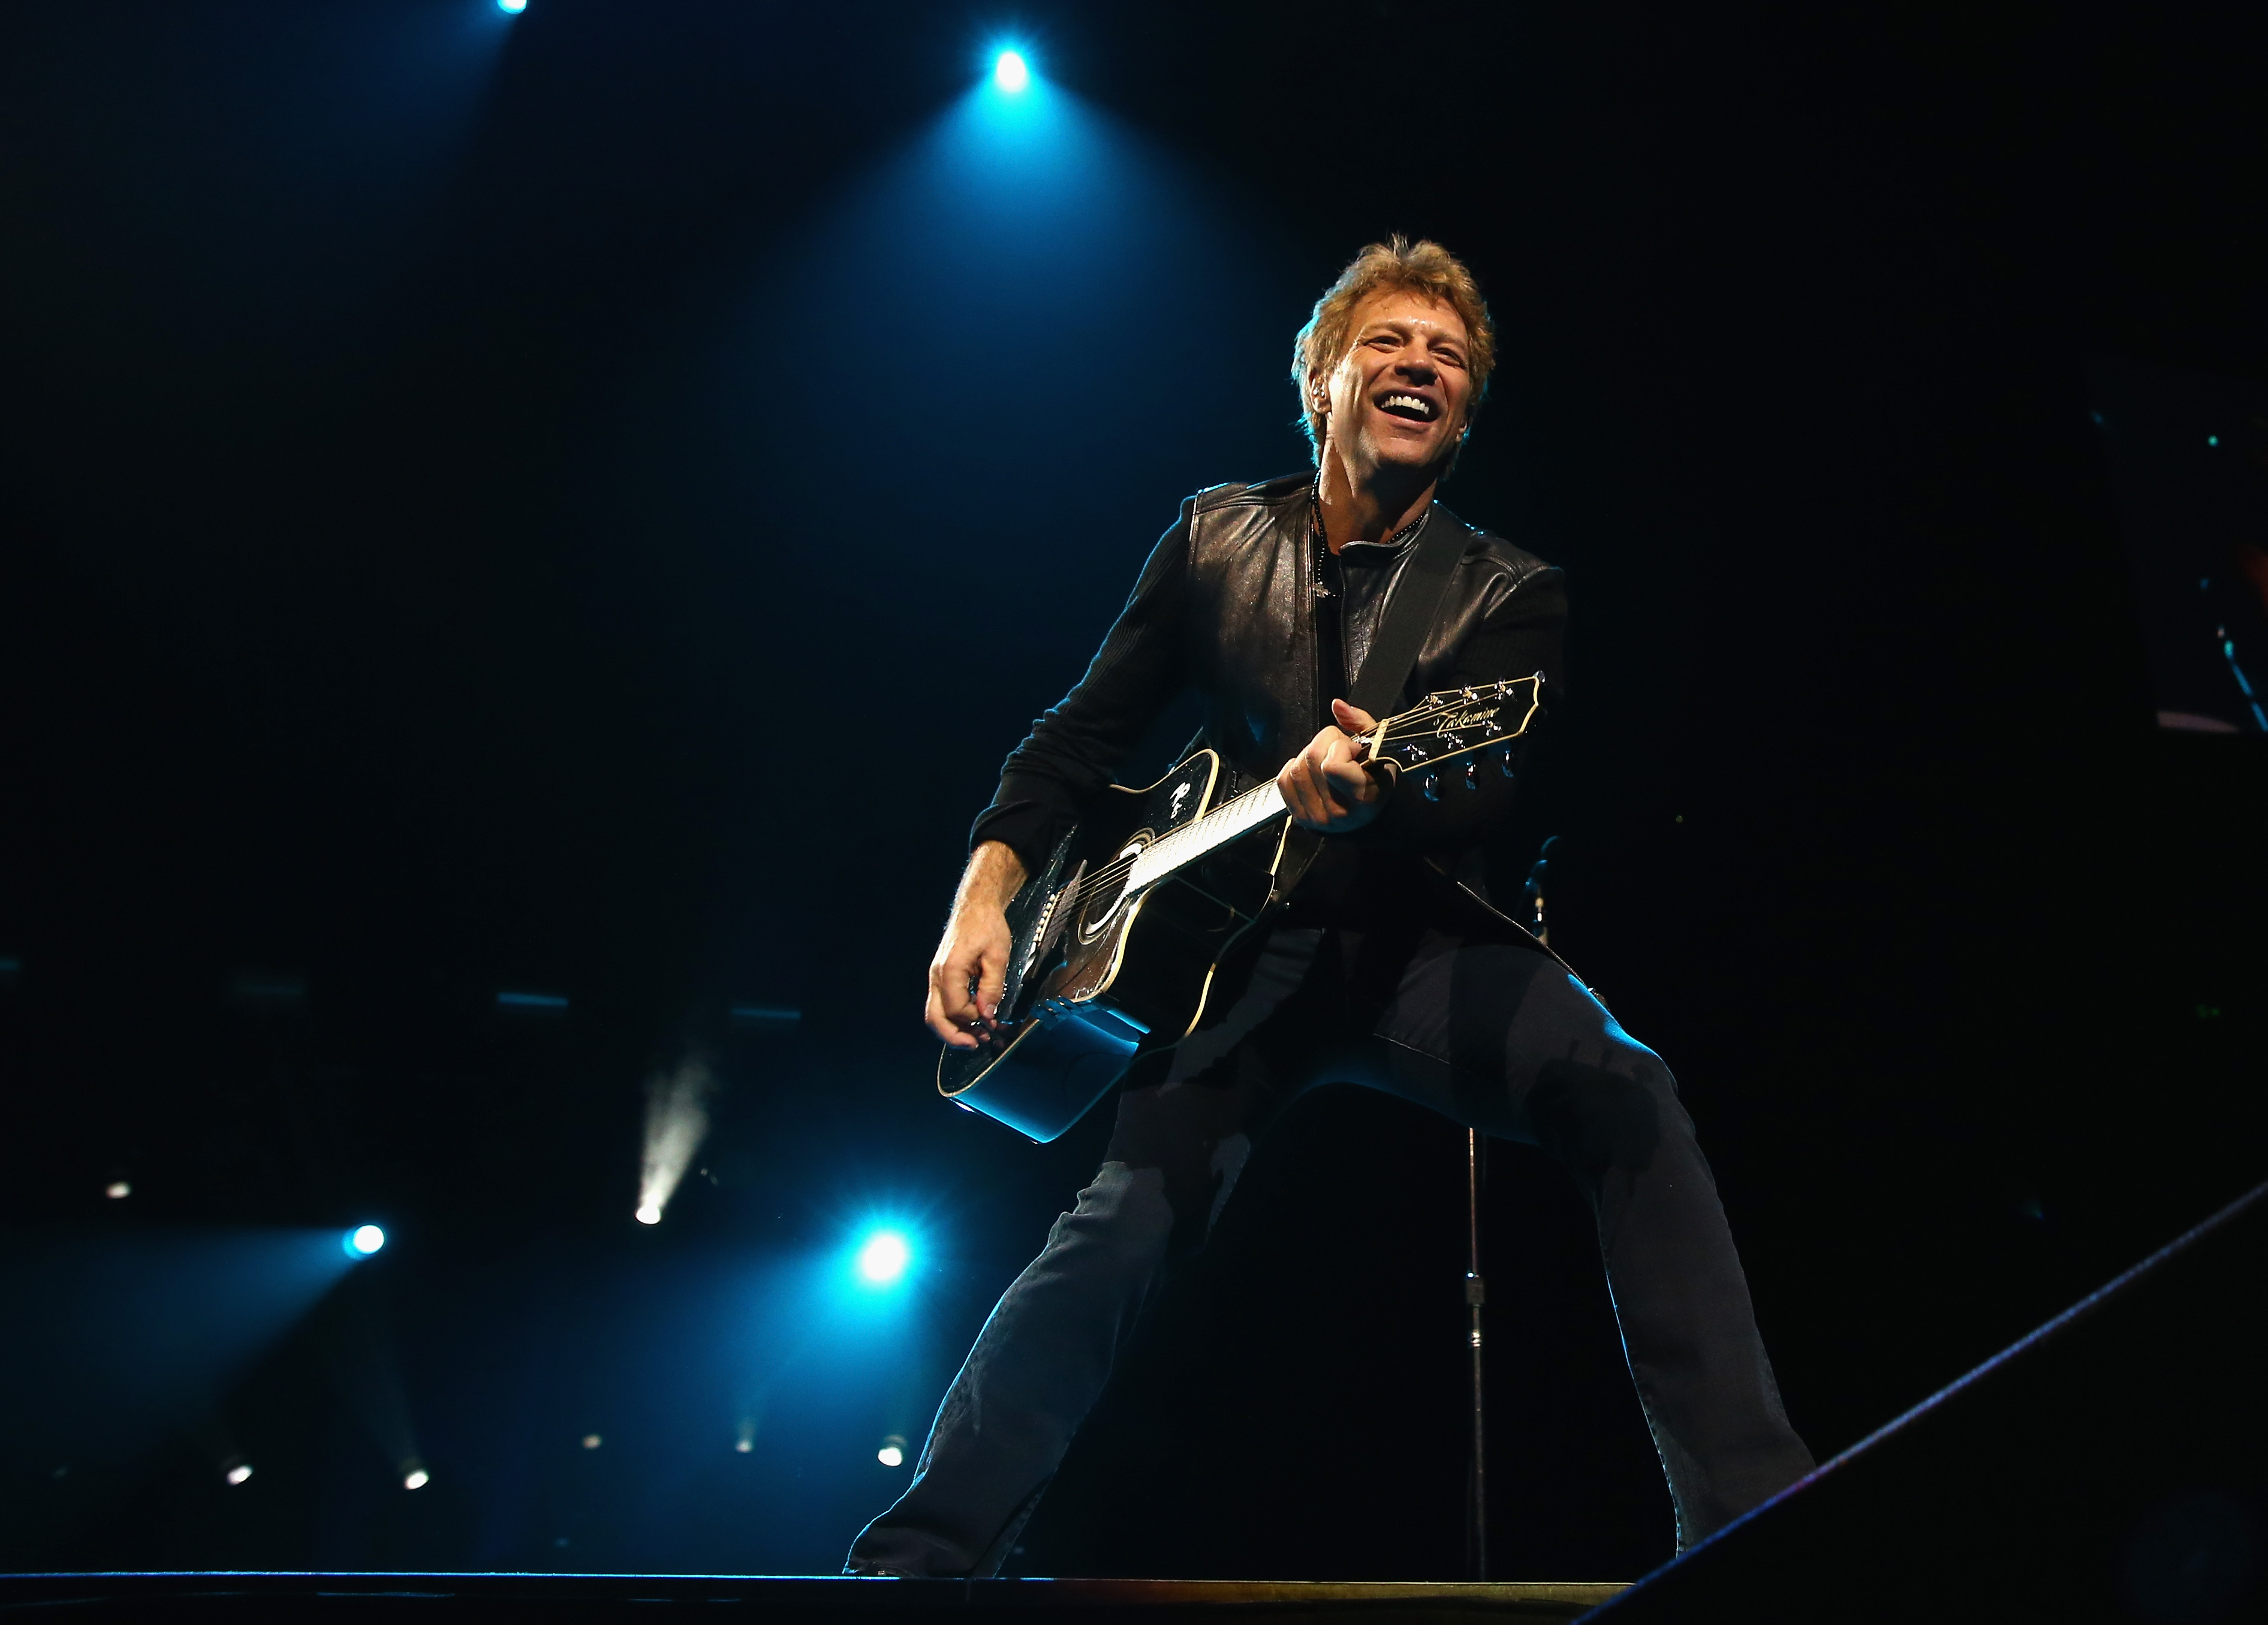 bon-jovi-tour-perth.jpg